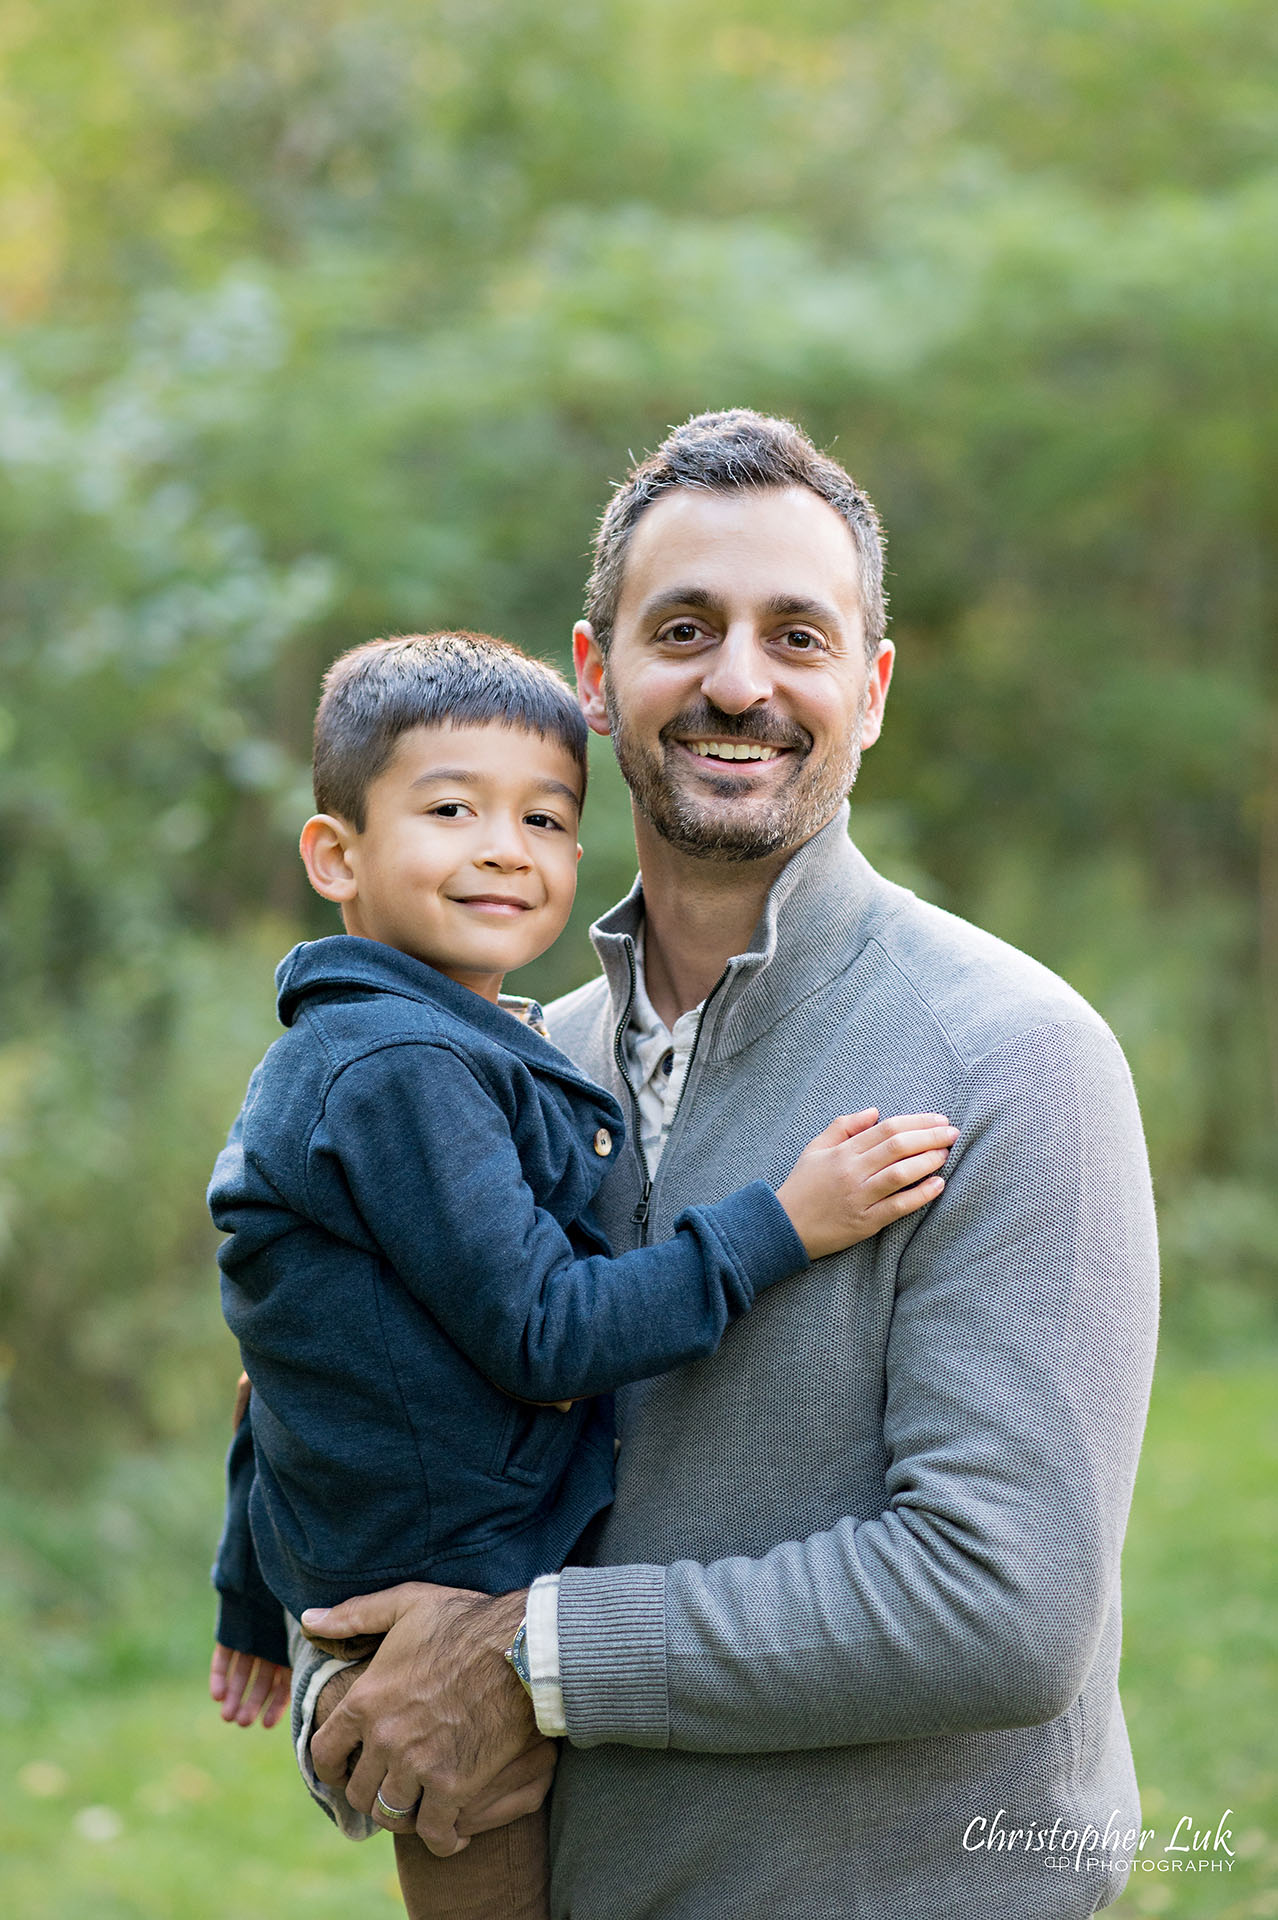 Christopher Luk Family Photographer Toronto Markham Unionville Autumn Fall Leaves Natural Candid Photojournalistic Father Fatherhood Son Brother Boy Smile Hug